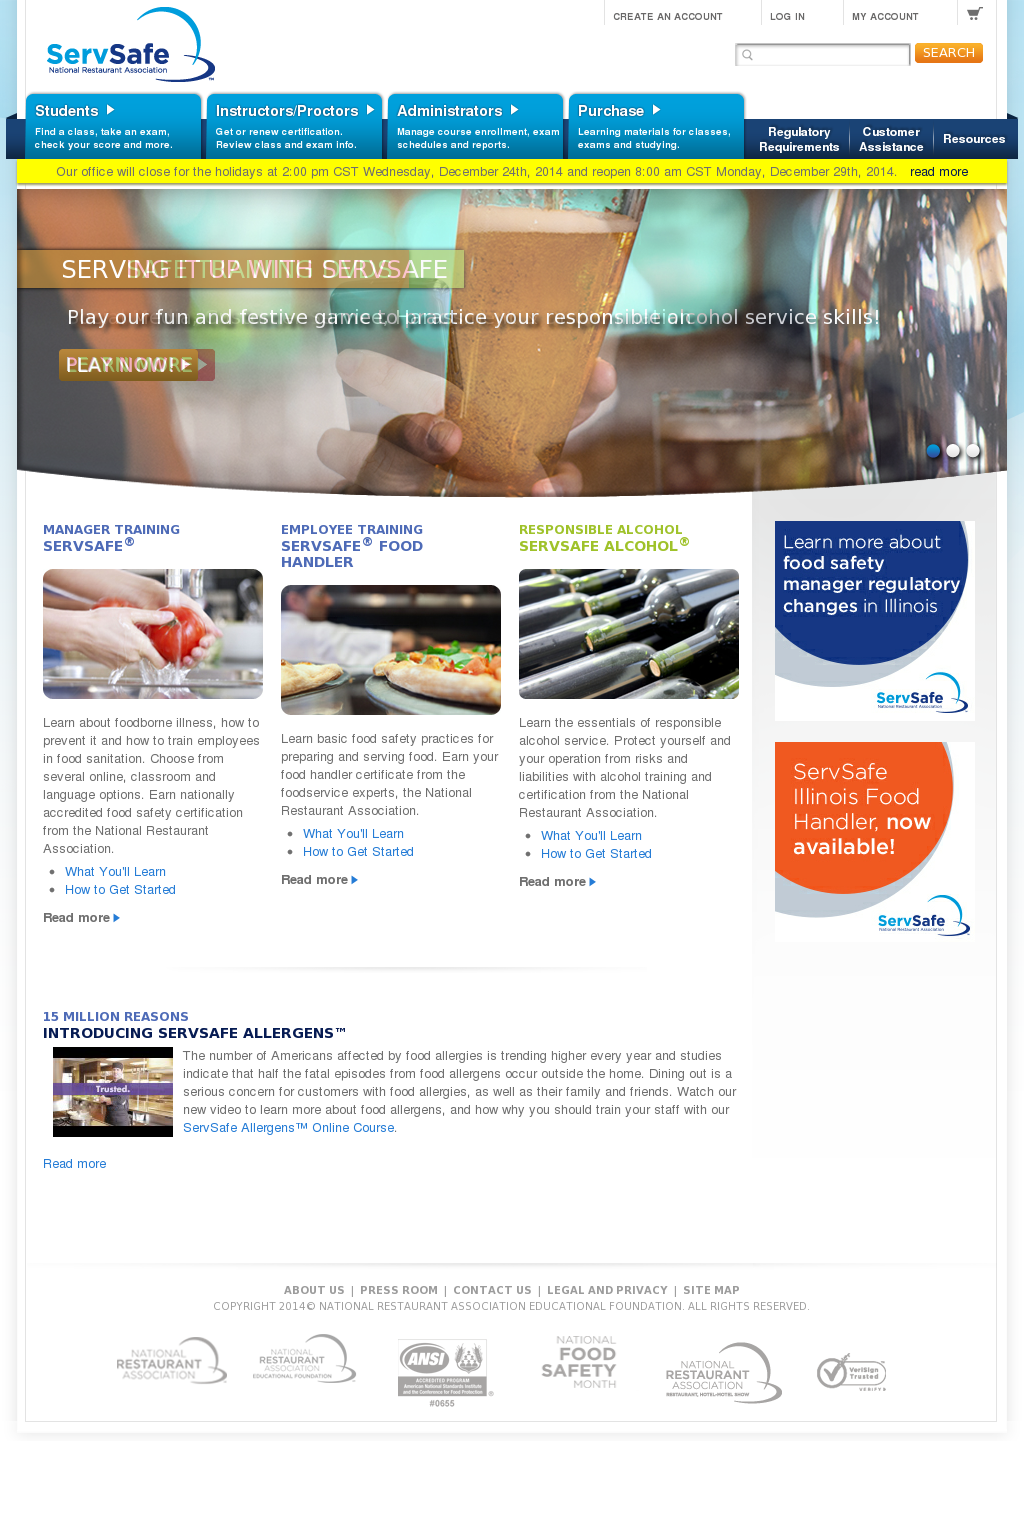 ServSafe Competitors, Revenue and Employees - Owler Company Profile